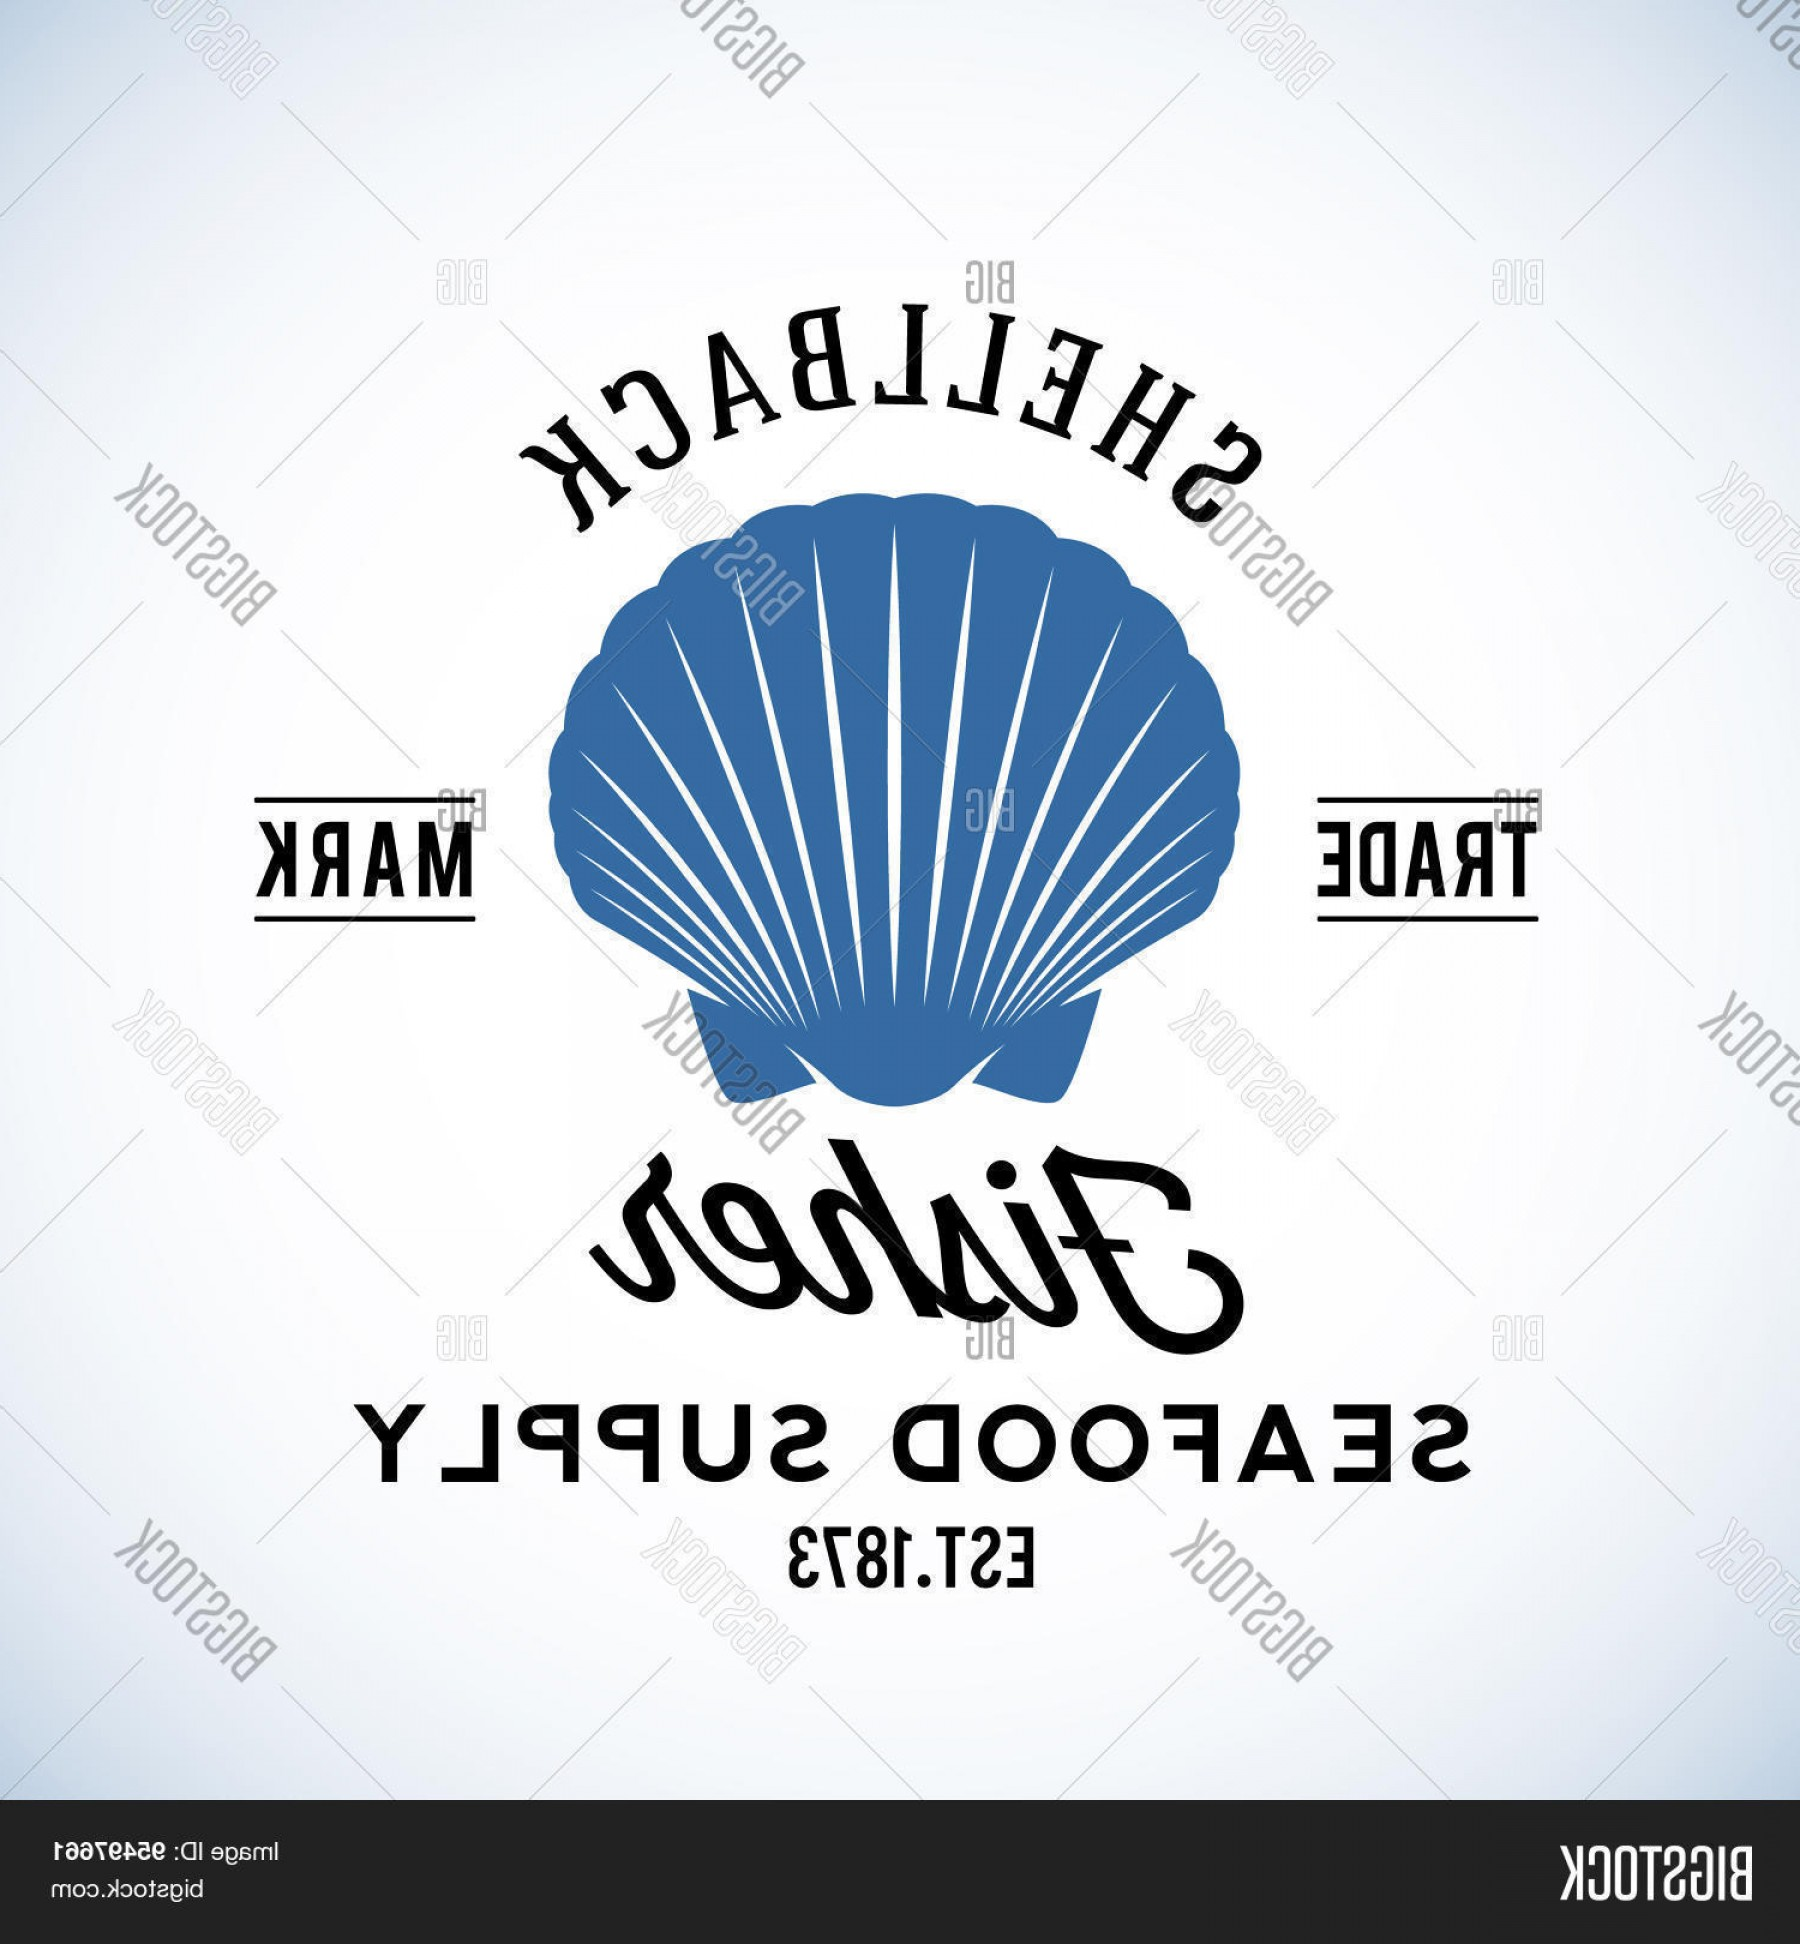 U S. Navy Shellback Logos Vector: Stock Vector Shellback Fisher Seafood Supply Abstract Vector Retro Logo Template Or Vintage Label With Typography